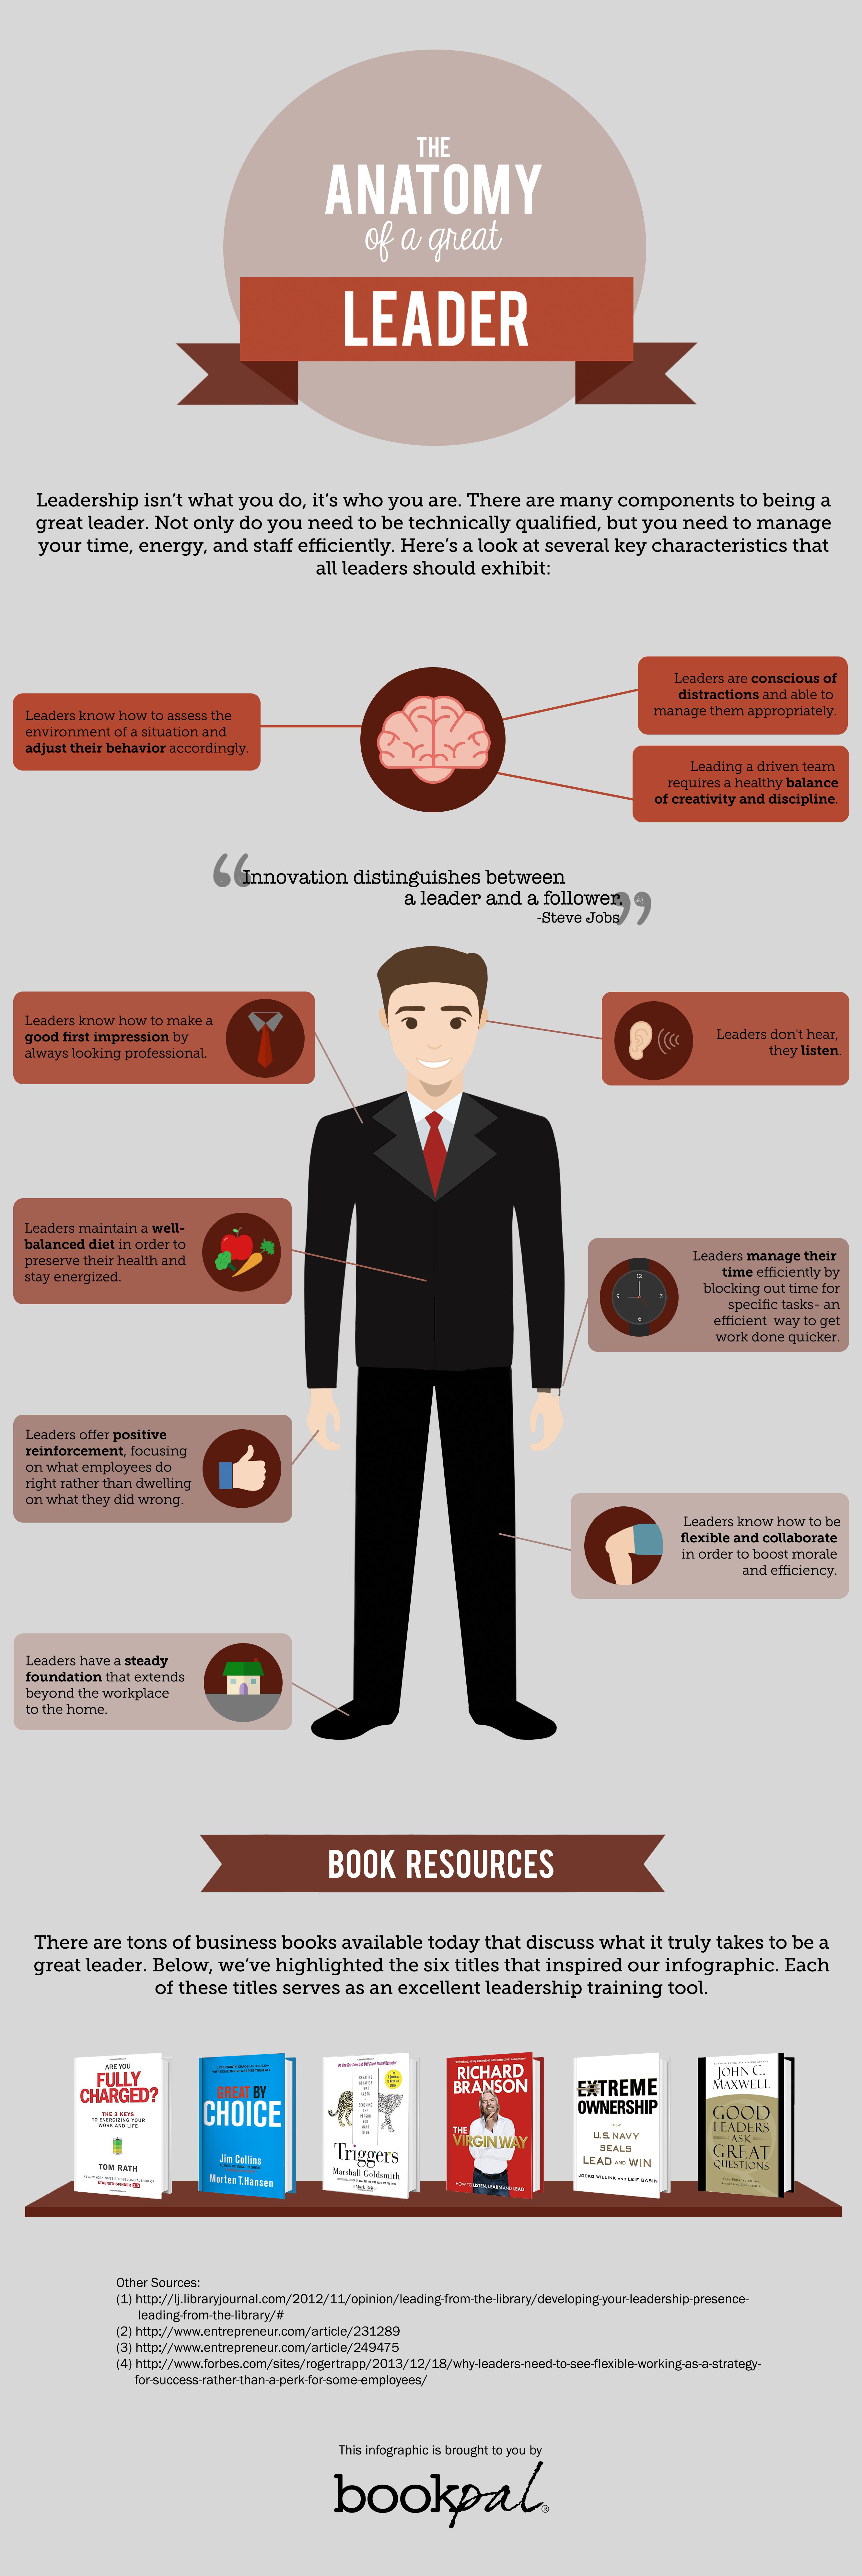 Anatomy of a great leader infographic